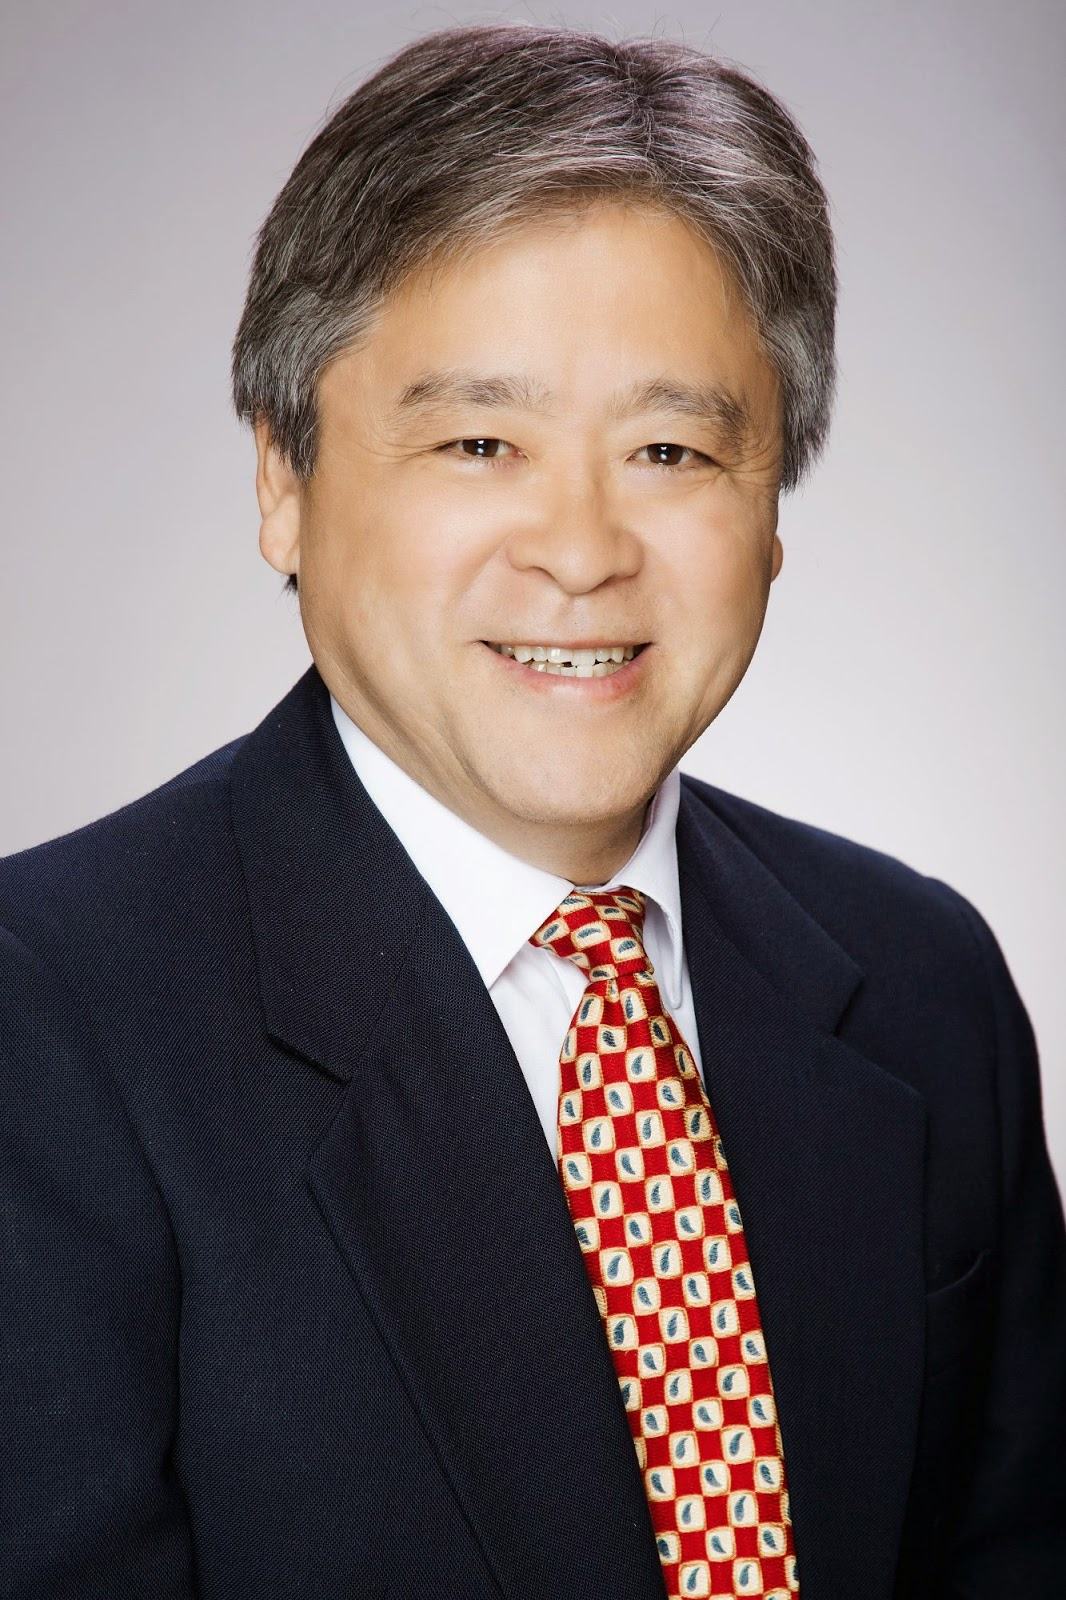 Rep Roy Takumi Named To Serve As Vice Chair Of Education Commission Of The States Investment